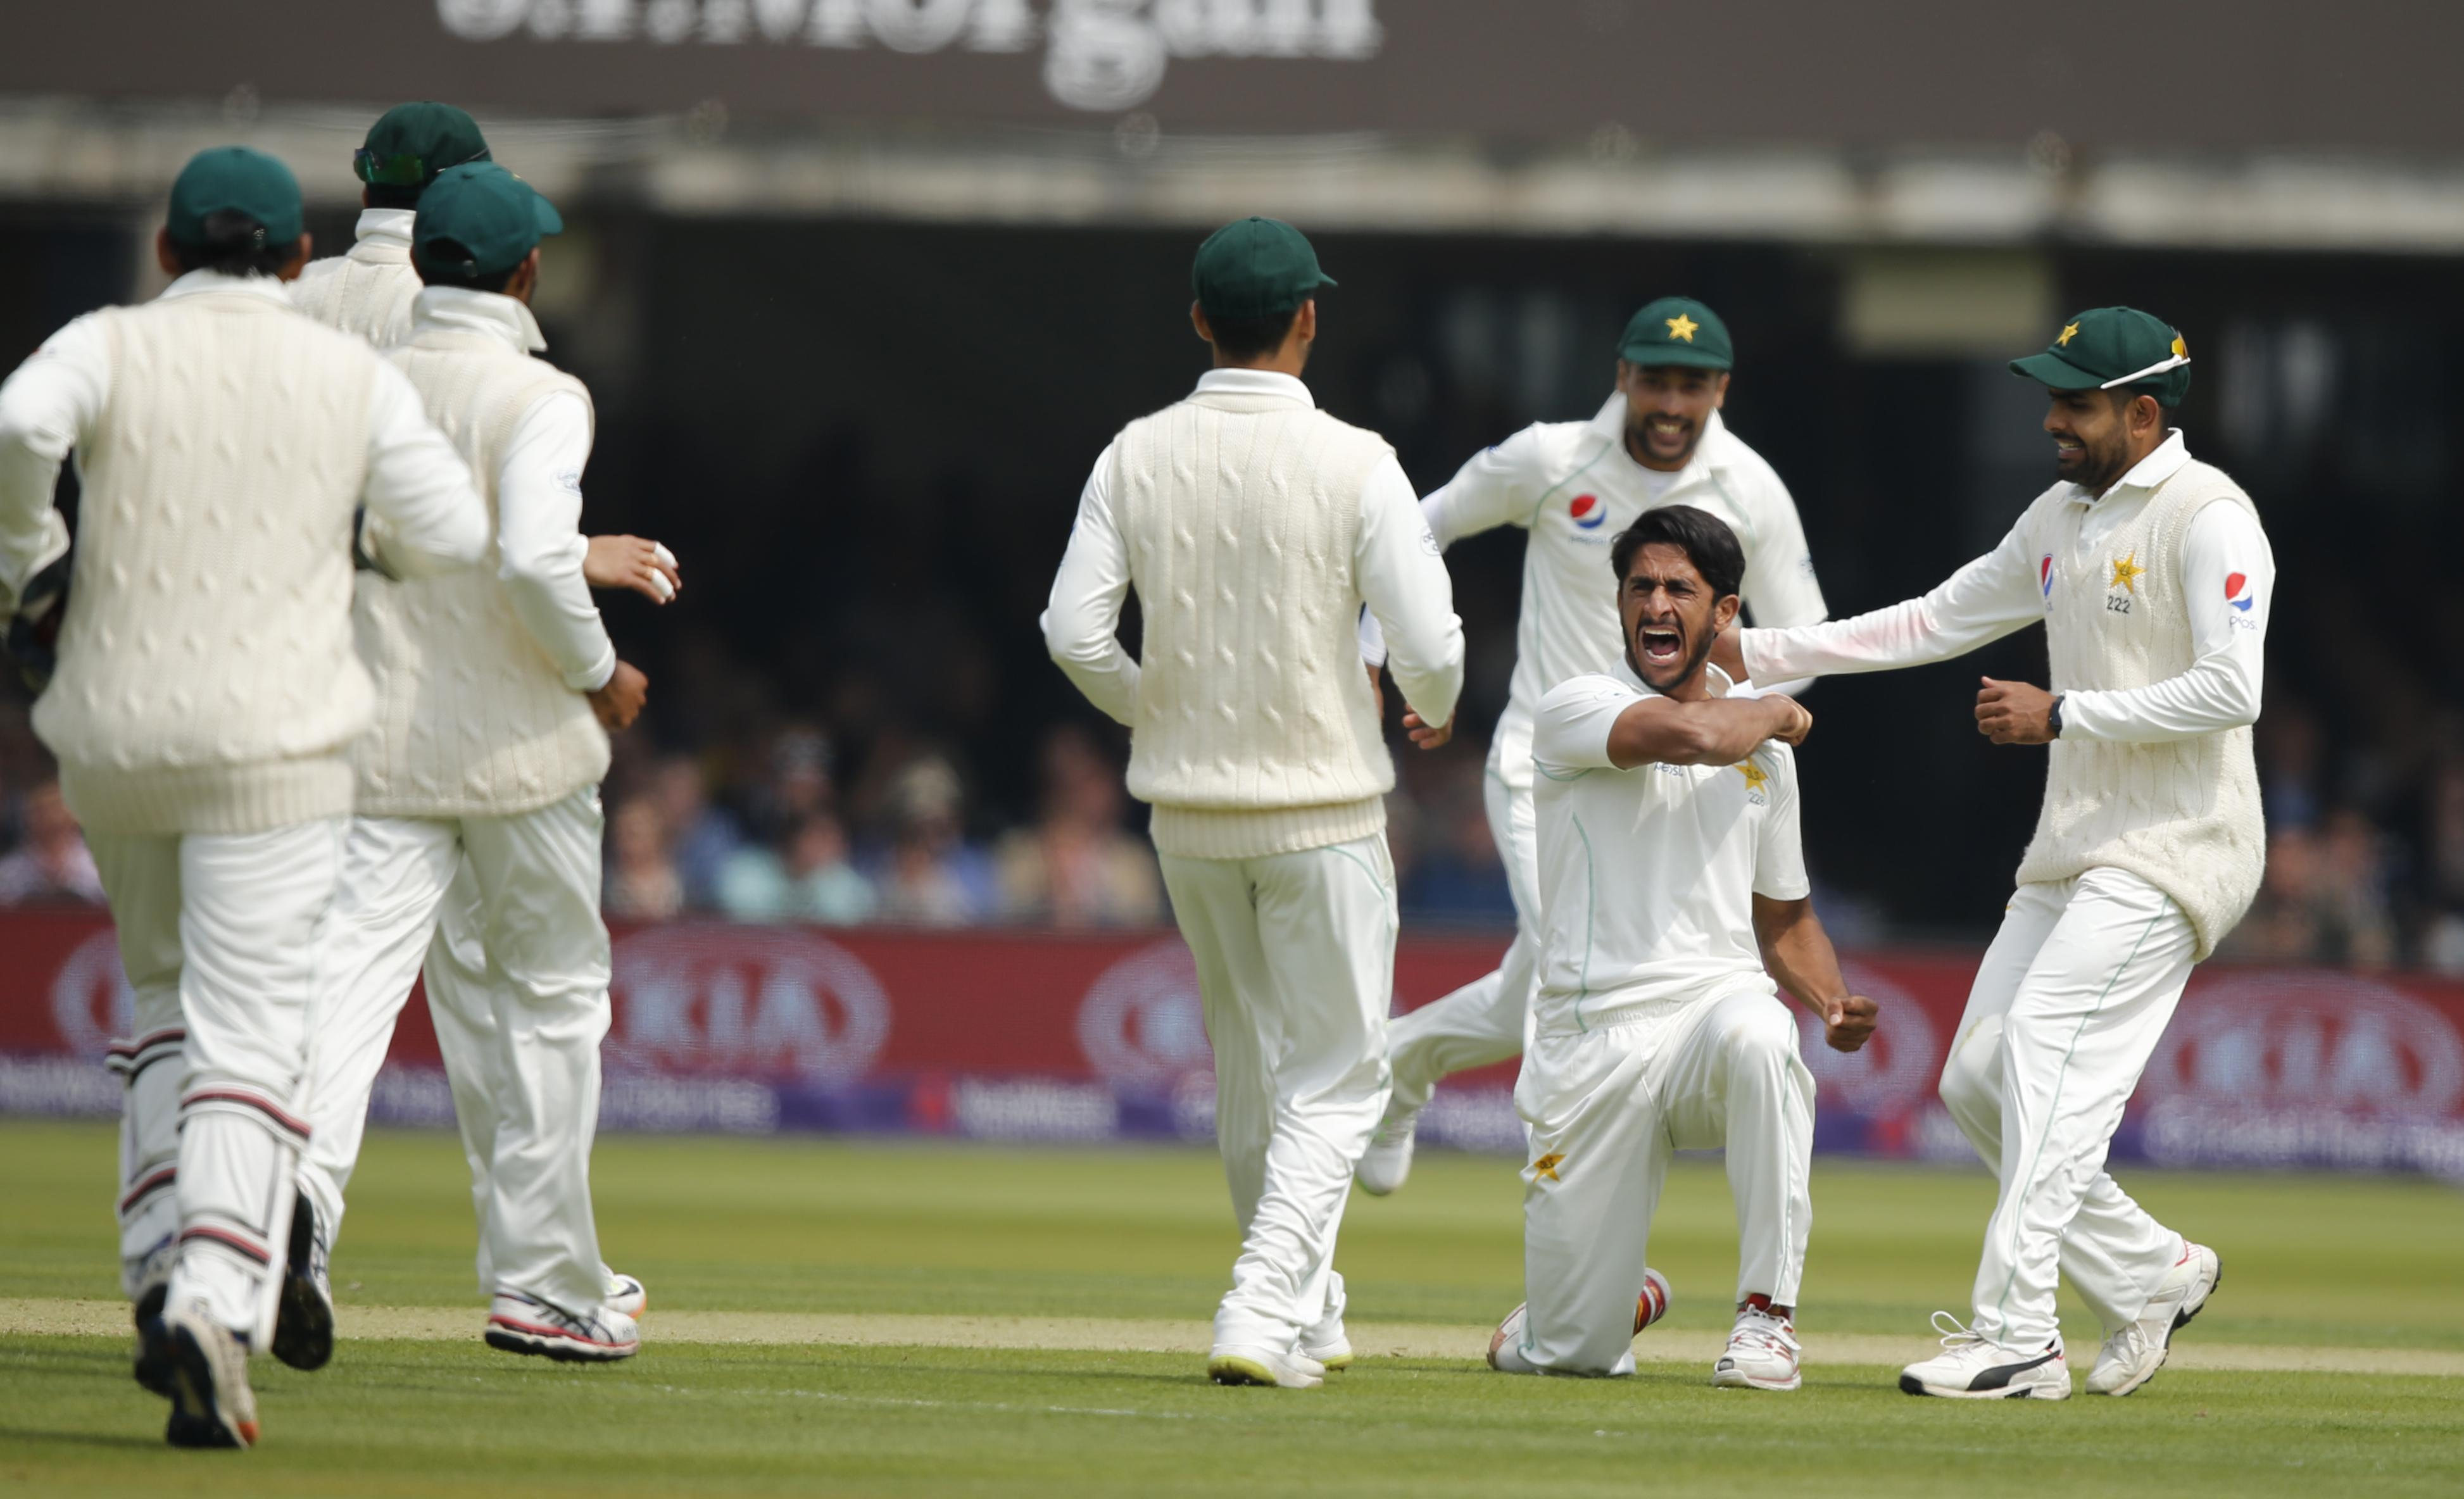 Hasan Ali claimed a major scalp after getting out Joe Root caught behind